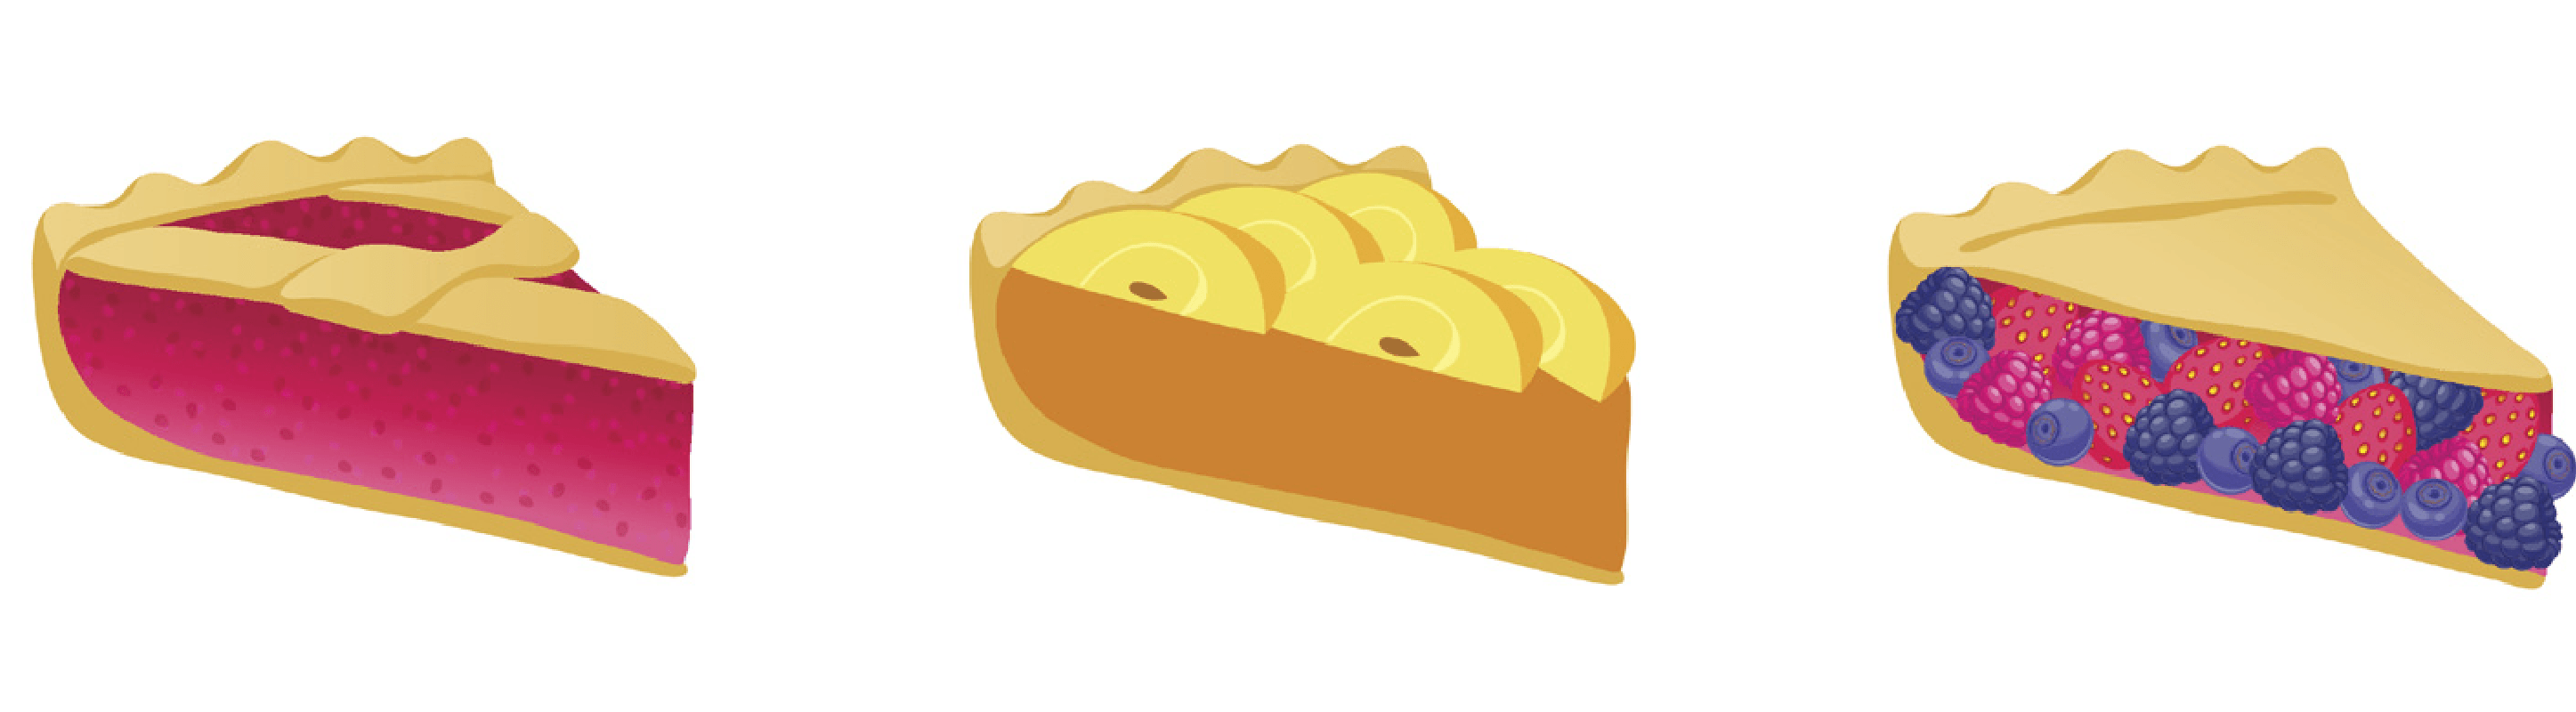 illustrations of slices of various flavored pies